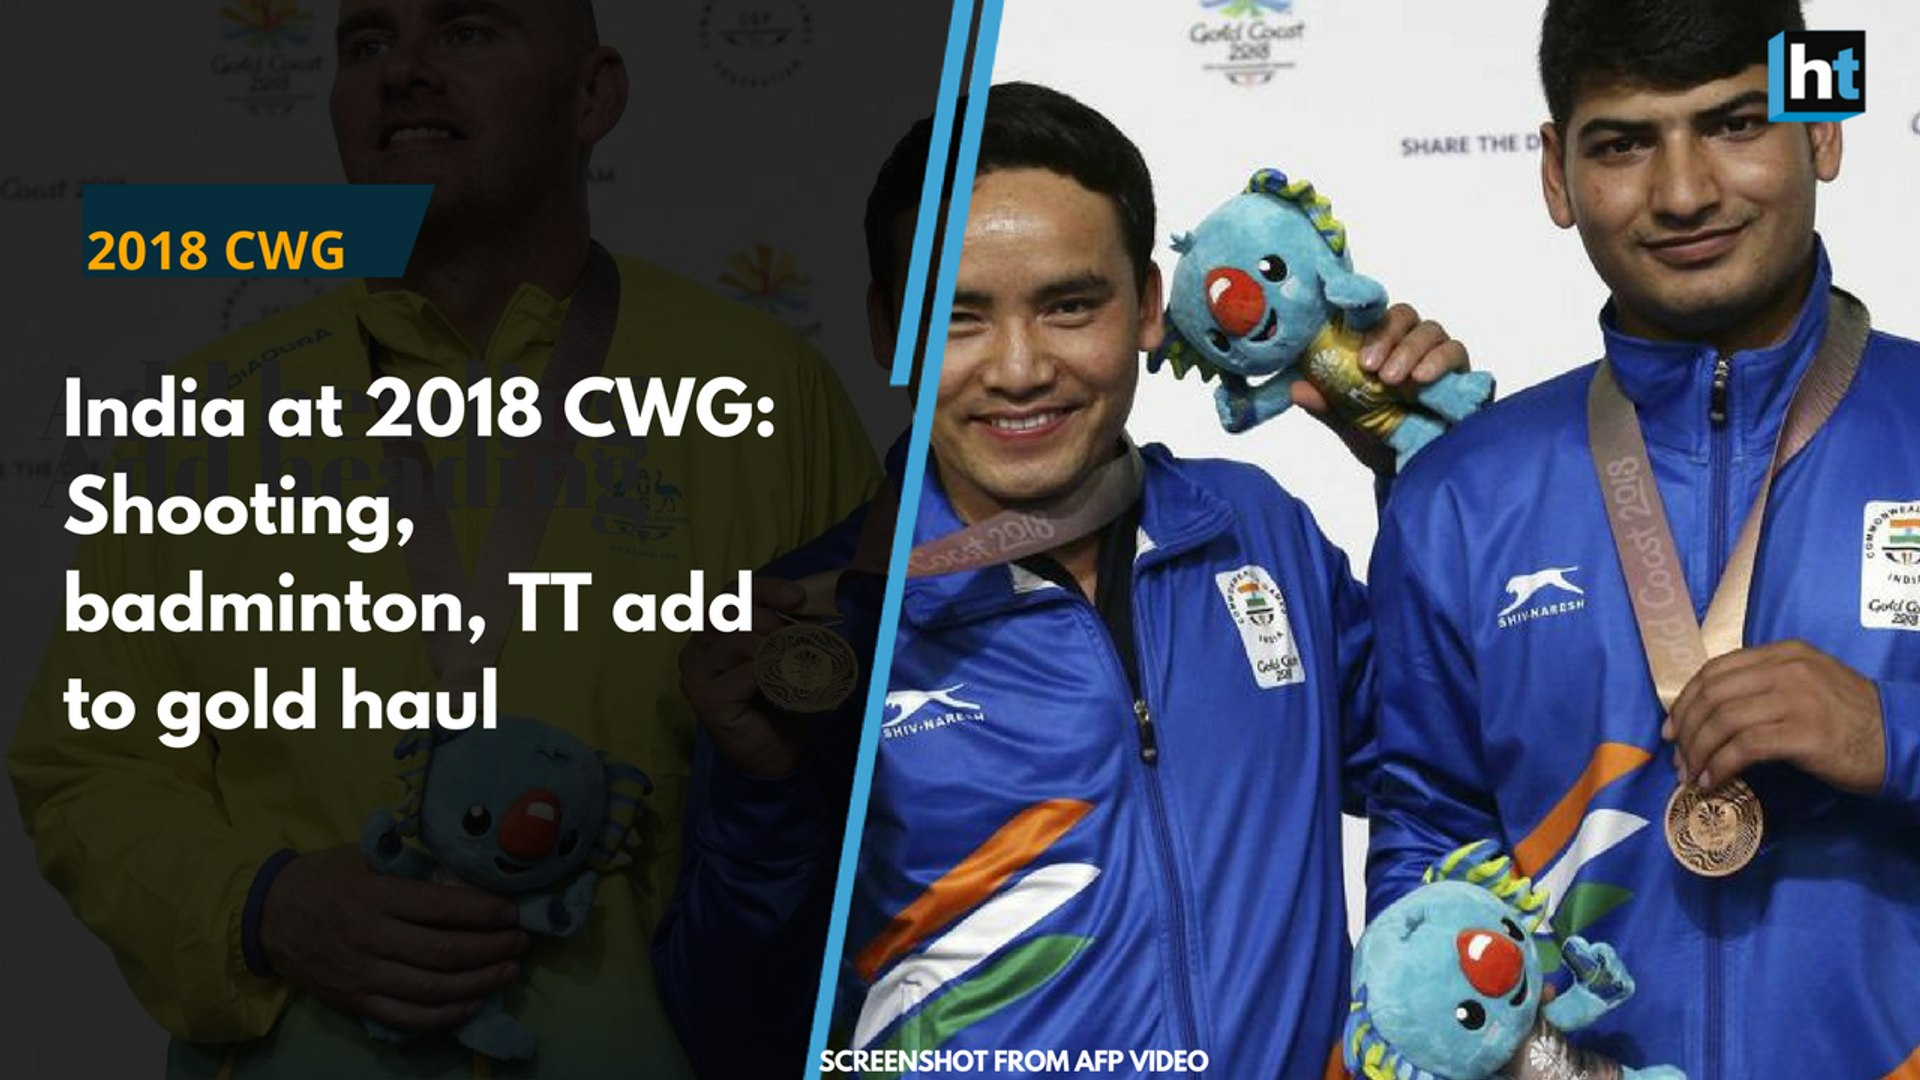 India at 2018 CWG: Gold medals in shooting, table tennis and badminton on day 5